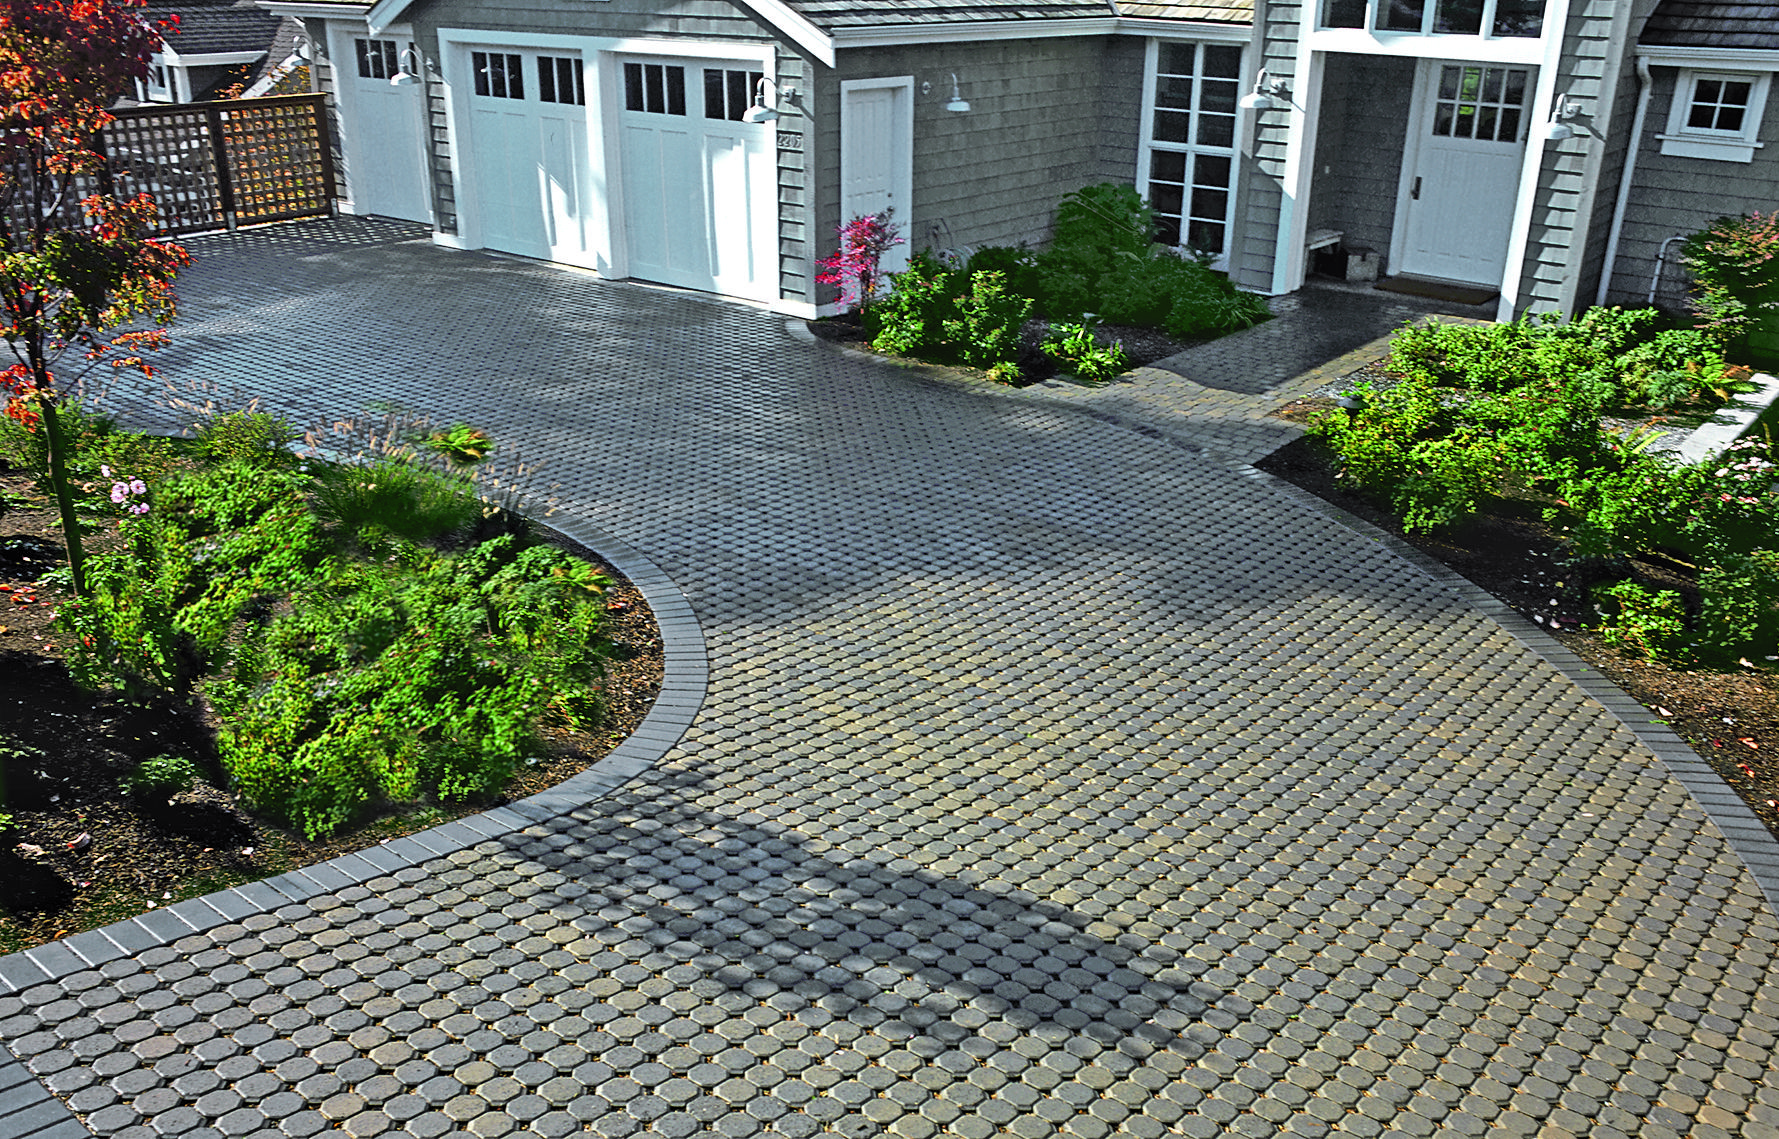 Best Ways To Deal With Storm Water Pervious Paving Pervious Concrete Pervious Pavers